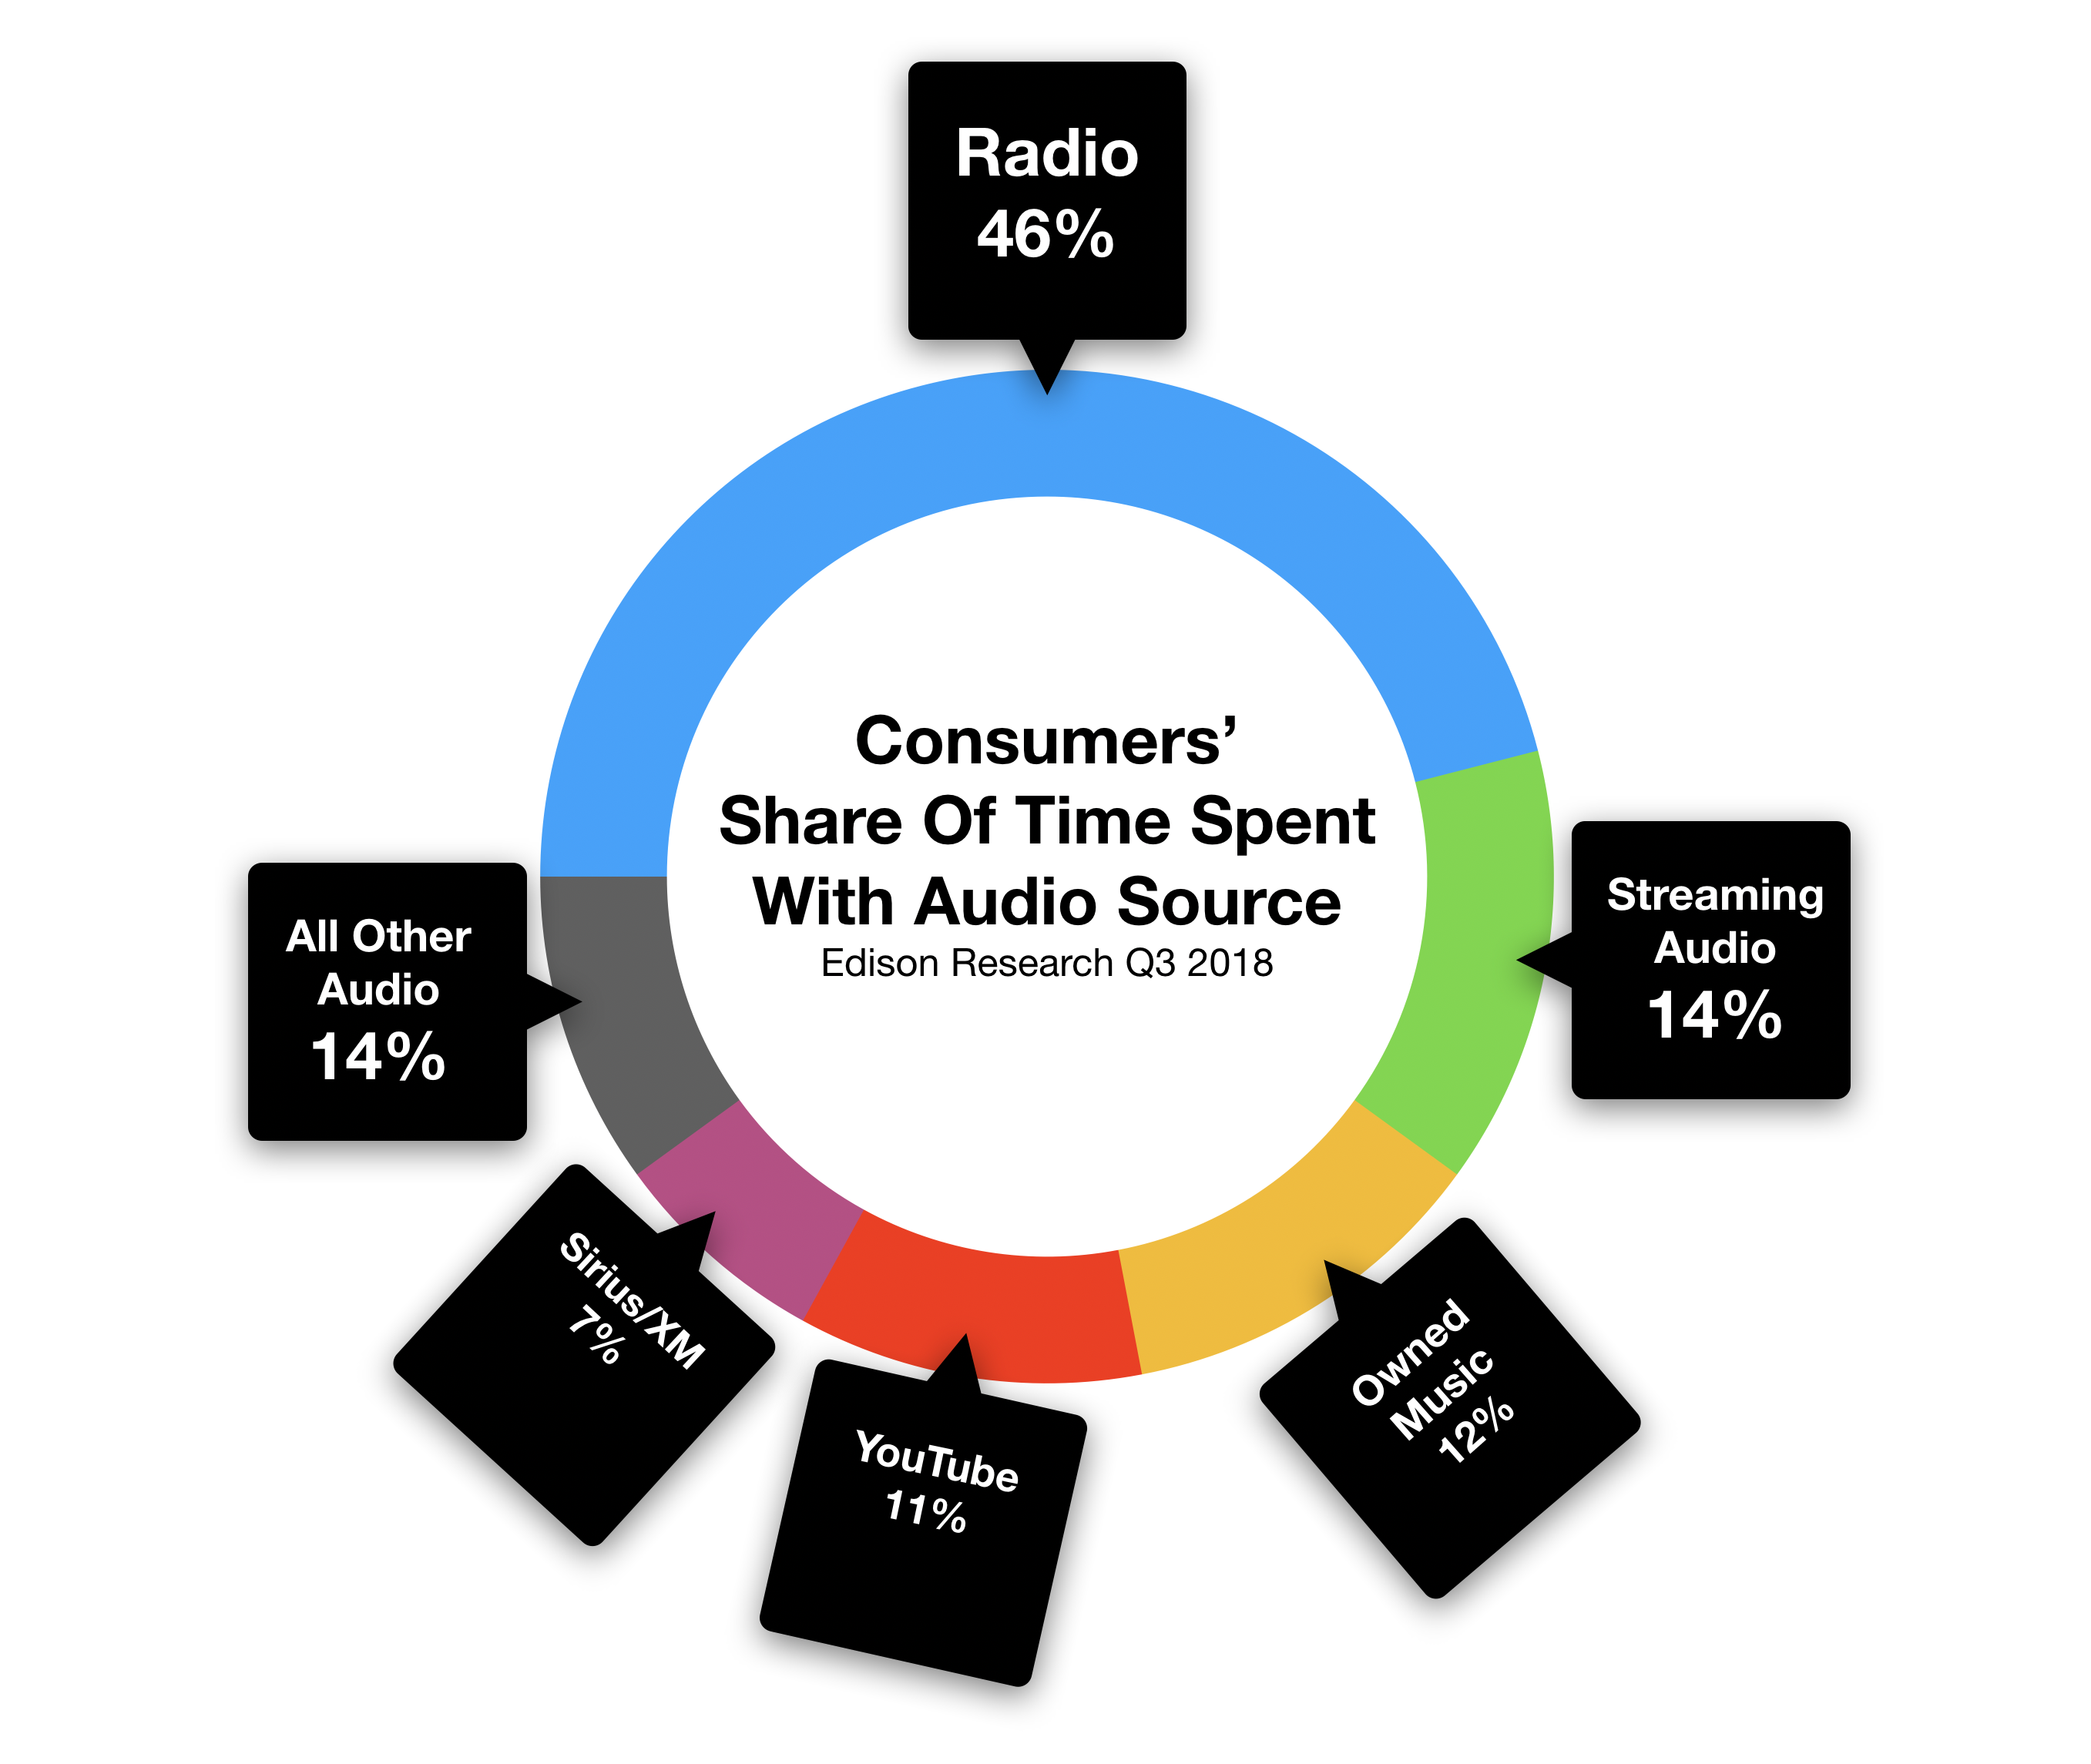 Tampa Consumer Share of Audio Time Spent With Radio